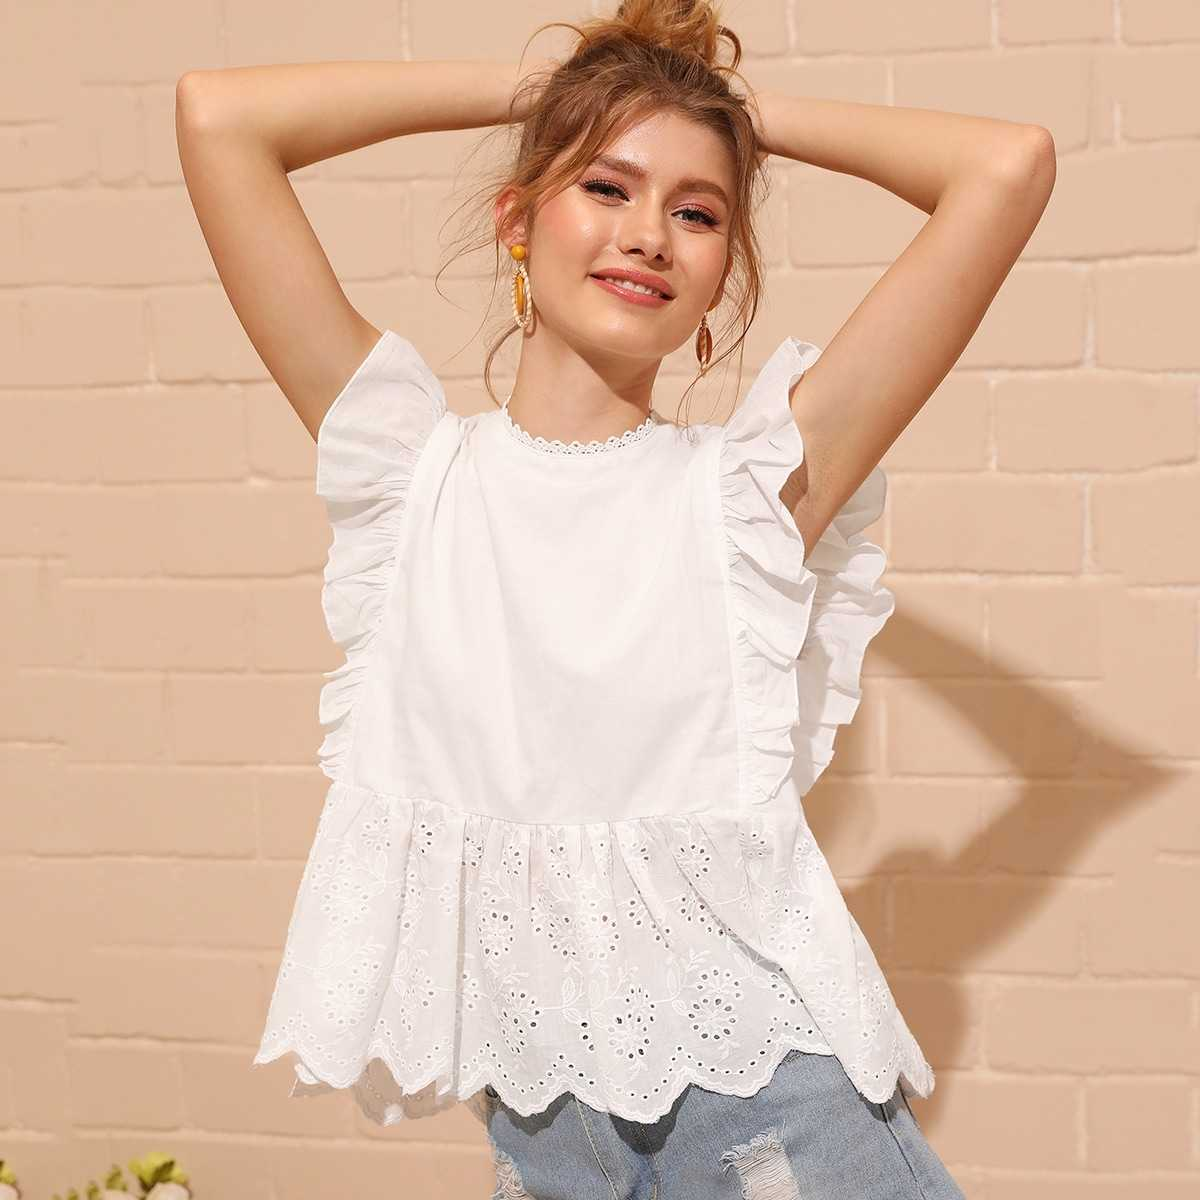 Eyelet Embroidered Ruffle Cuff Blouse in White by ROMWE on GOOFASH